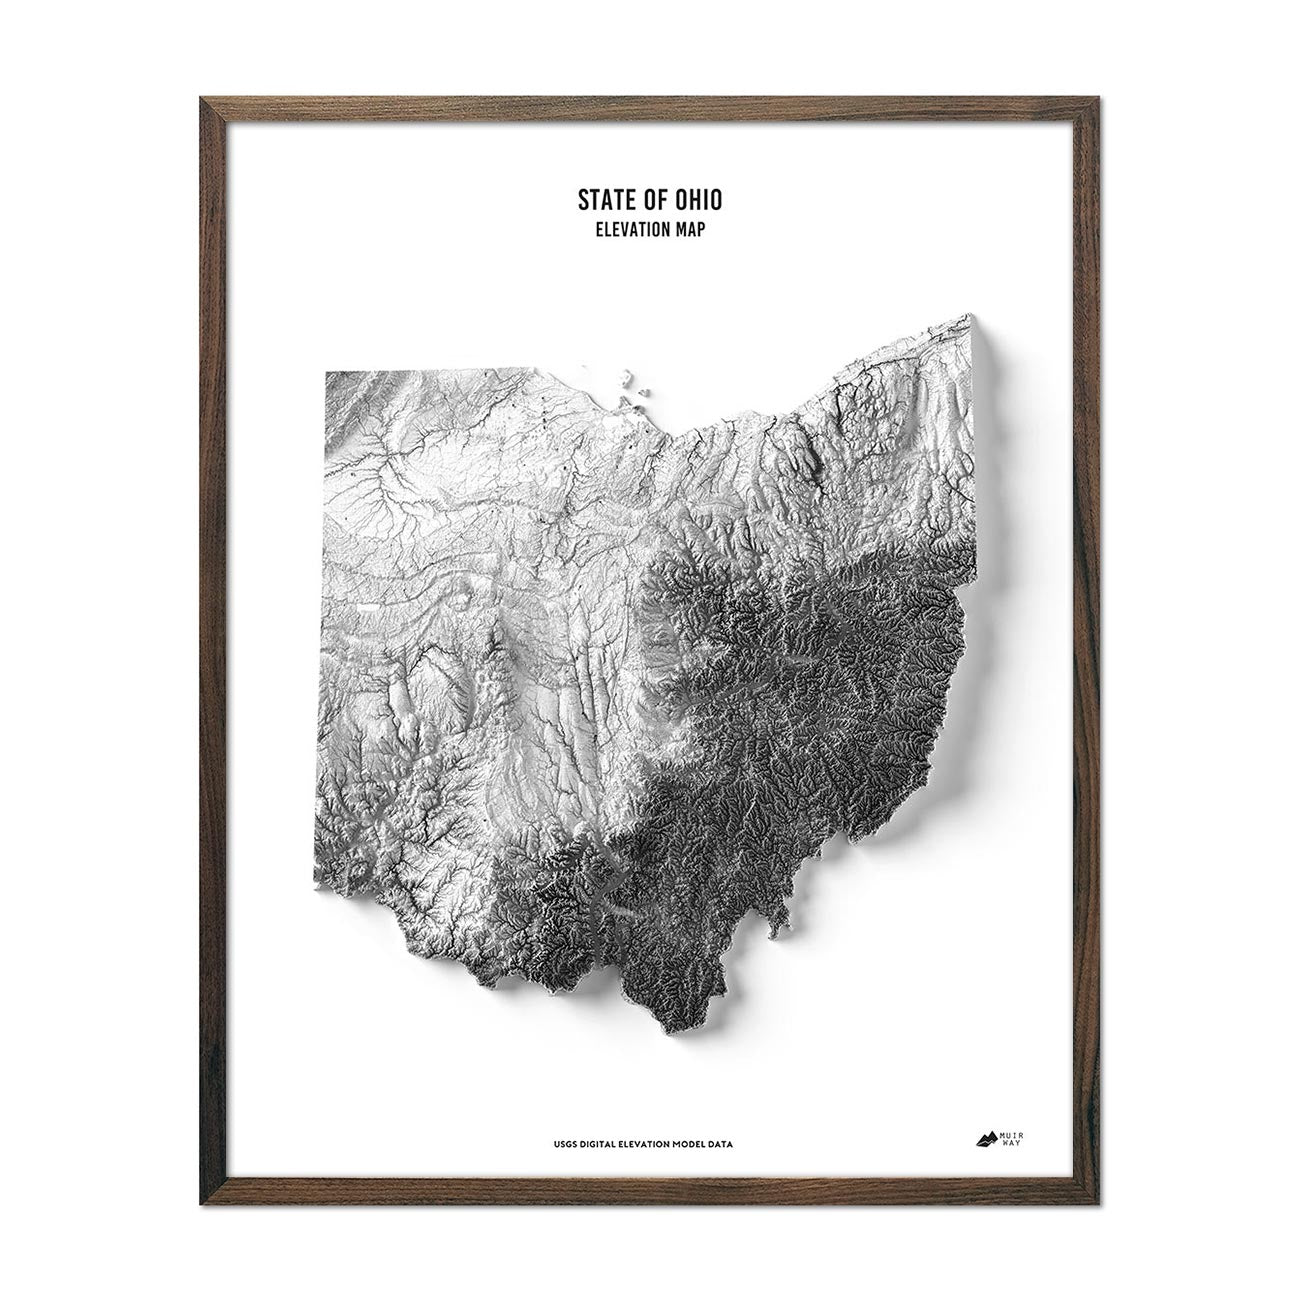 Ohio Elevation Map